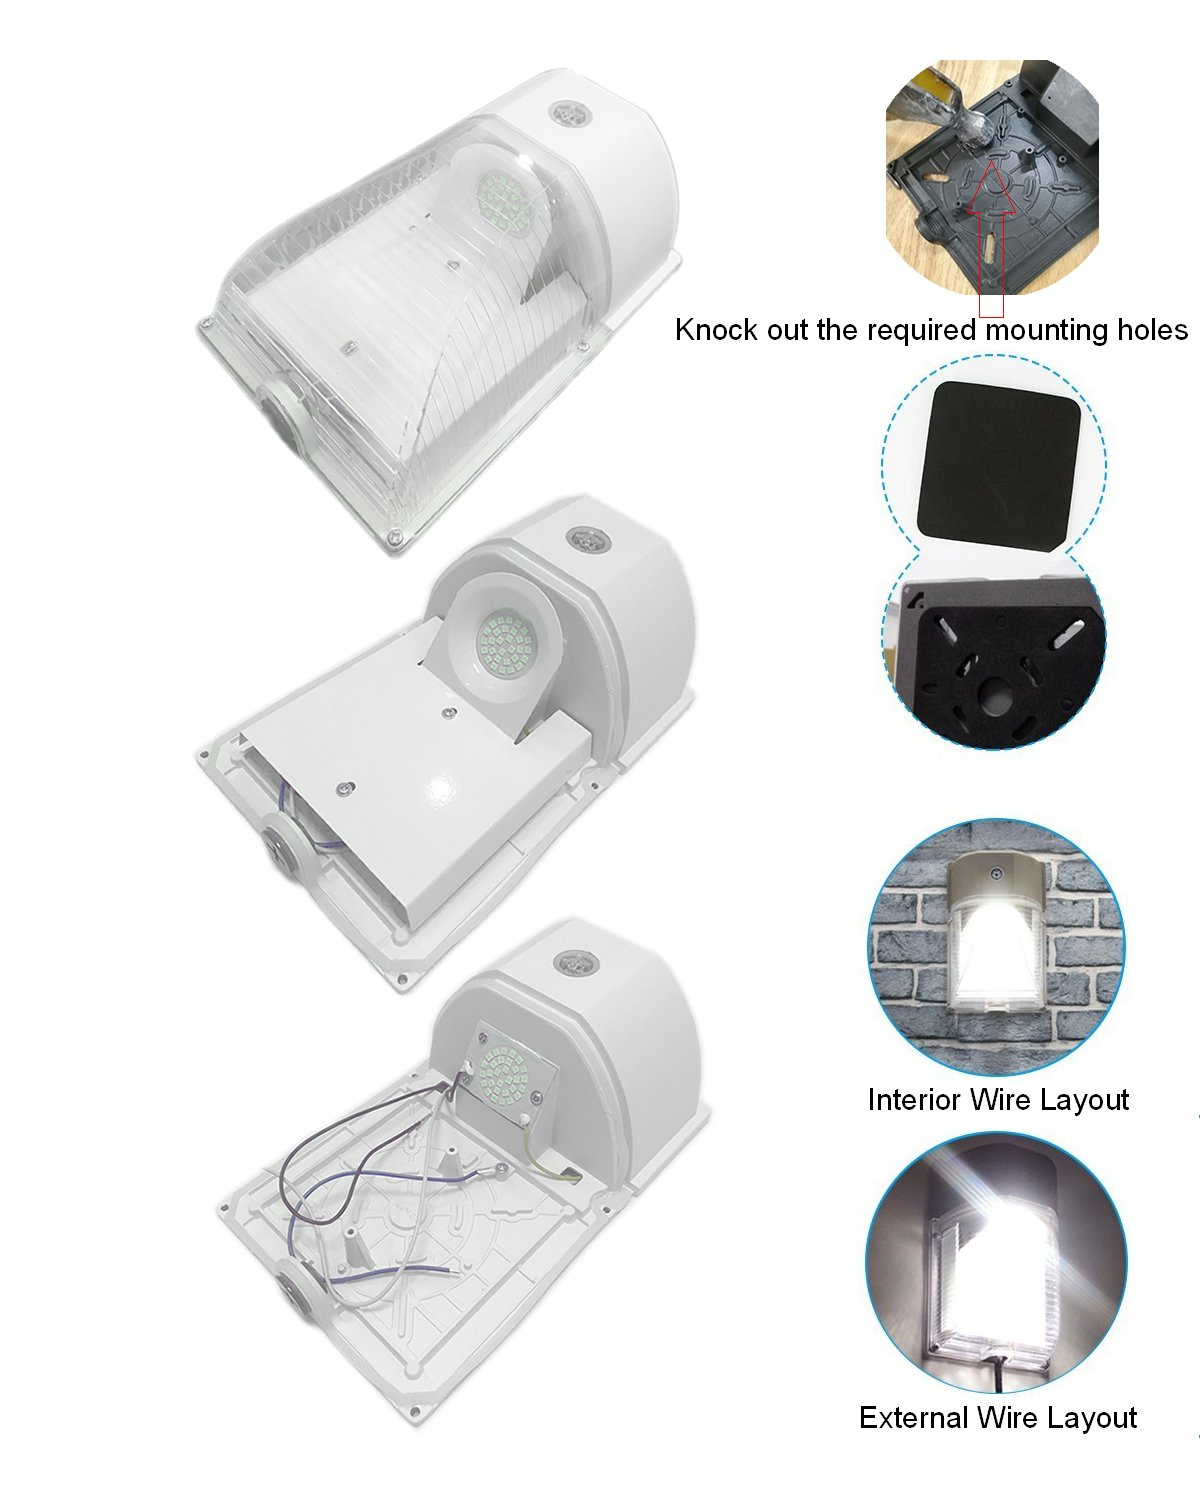 Wall Lights Tools Home Improvement Exterior Security Lighting Fixtures For Garage Garden Yard 2 Pack White 26w Led Wall Pack Light Dusk To Dawn Photocell Outdoor Wall Mount Light 3000lm 5000k Daylight